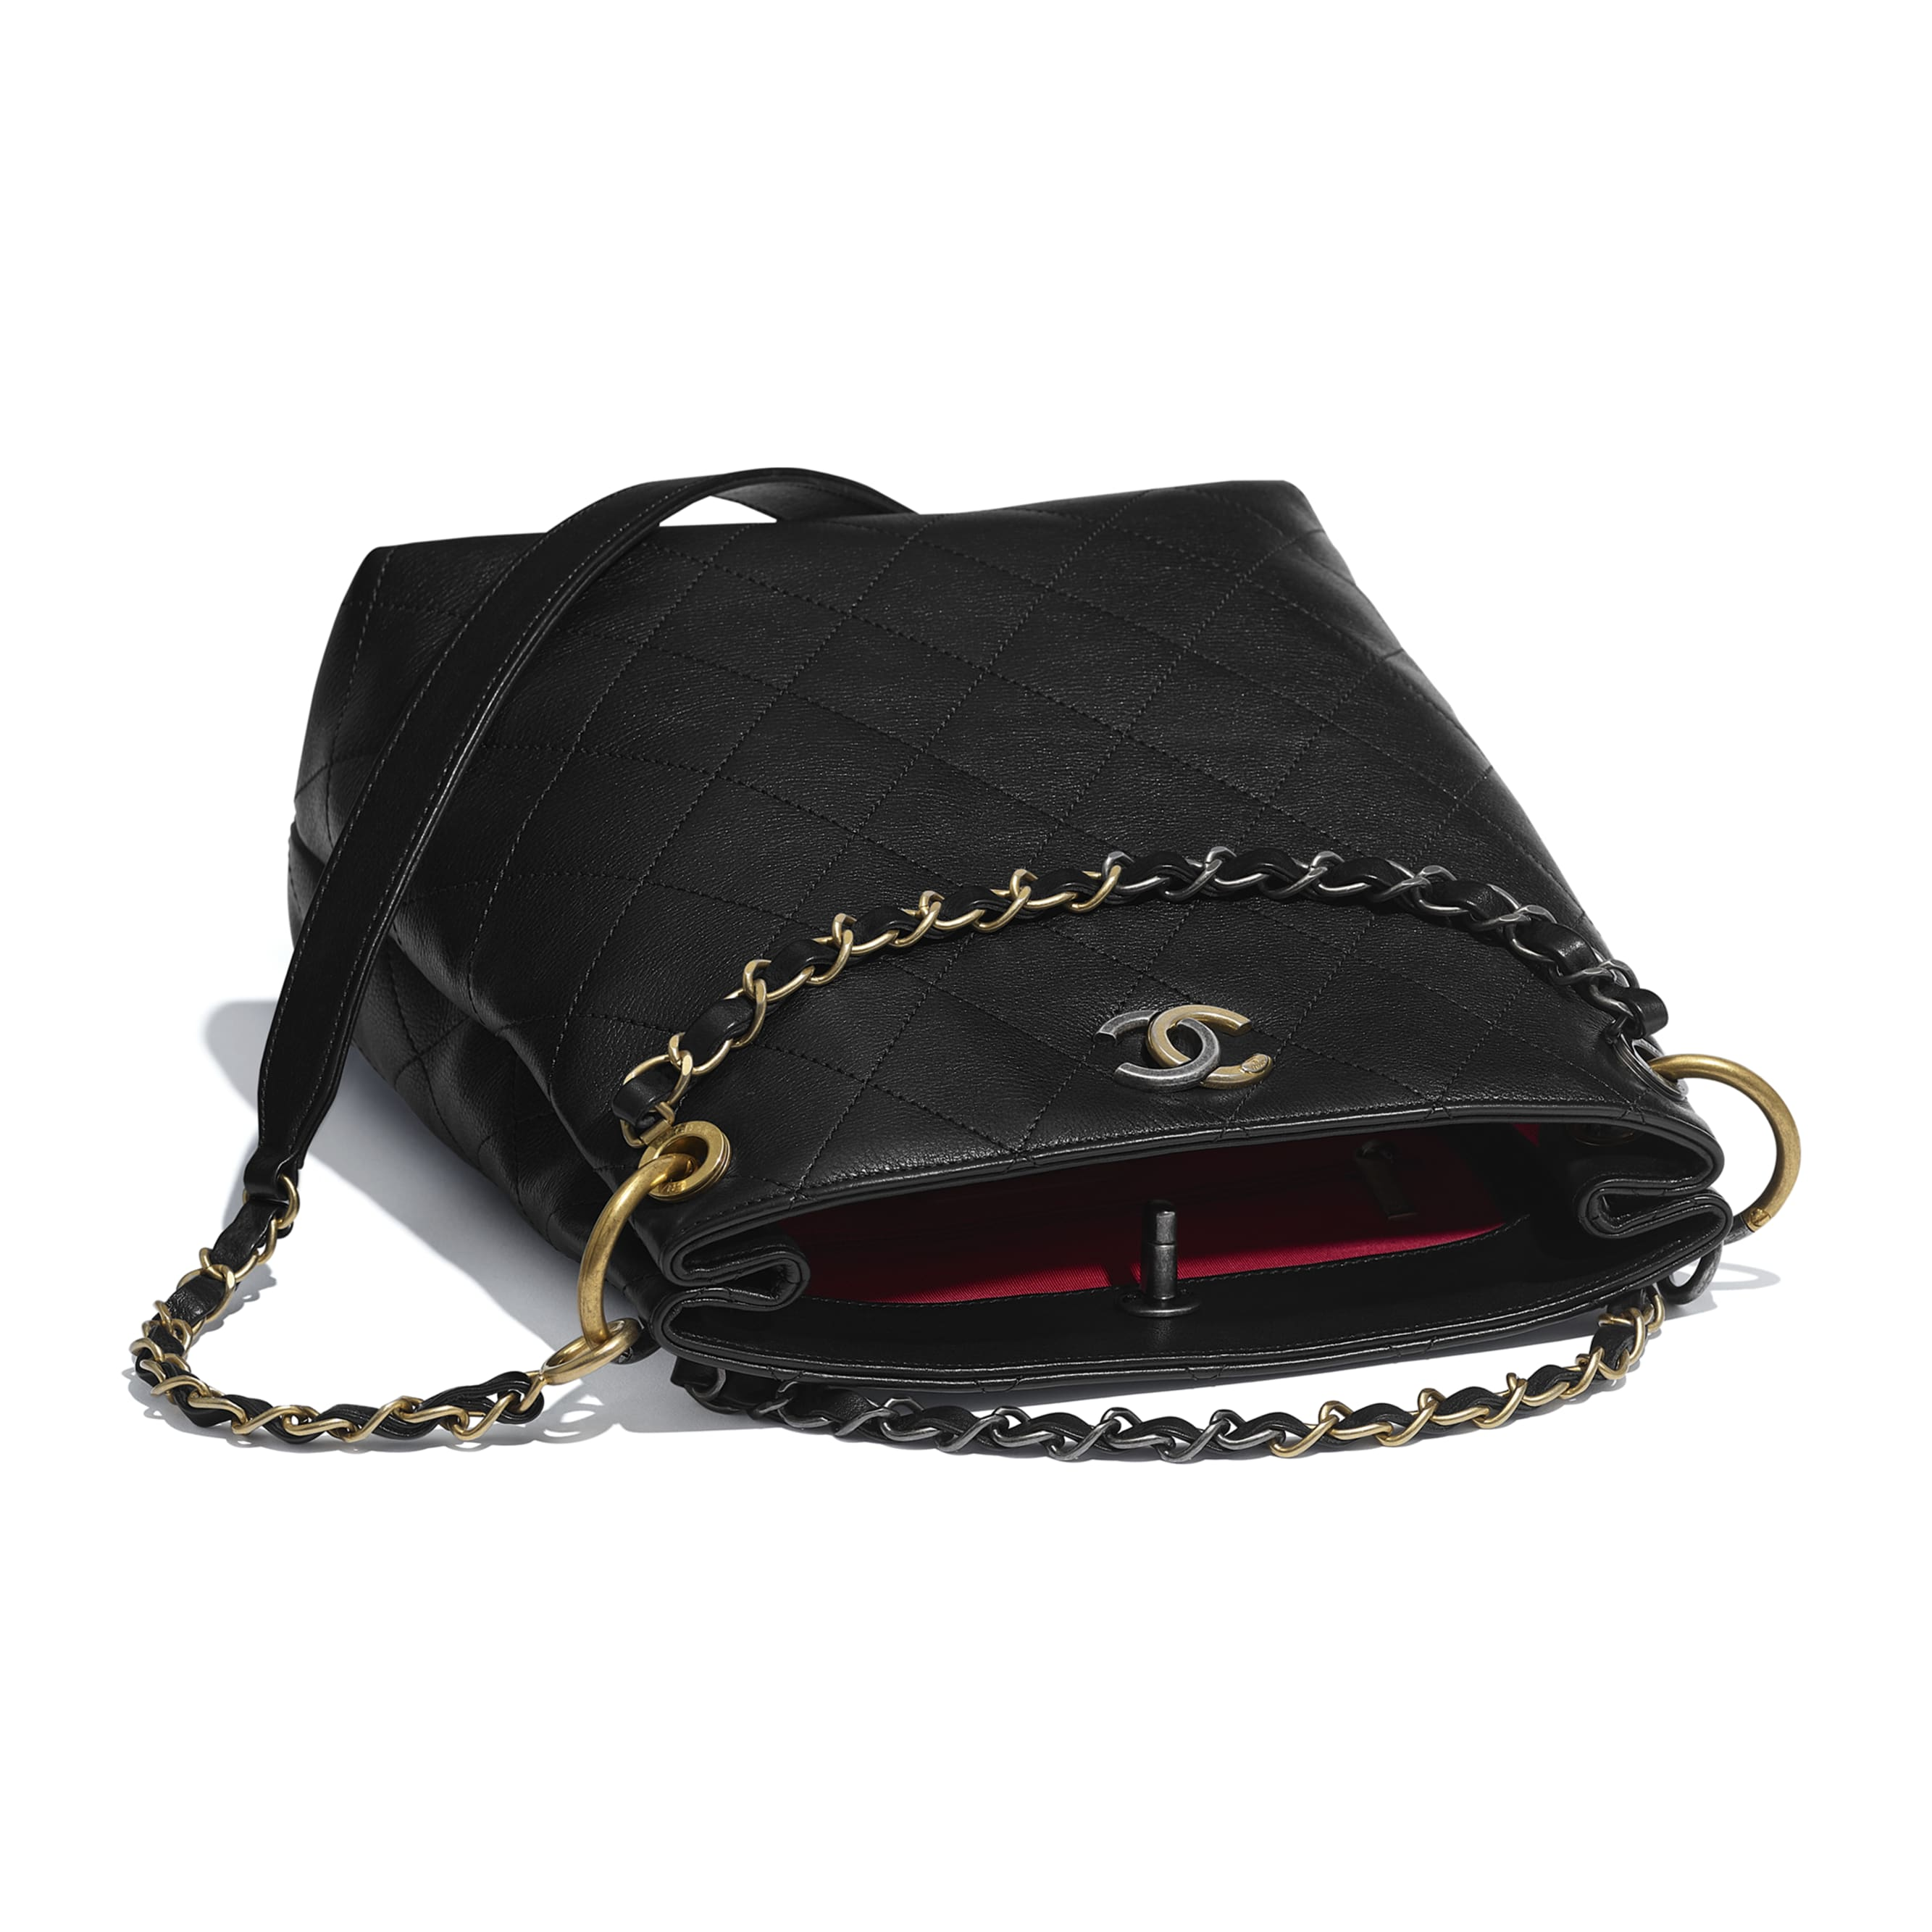 Hobo Handbag - Black - Calfskin, Gold-Tone, Silver-Tone & Ruthenium-Finish Metal - CHANEL - Other view - see standard sized version